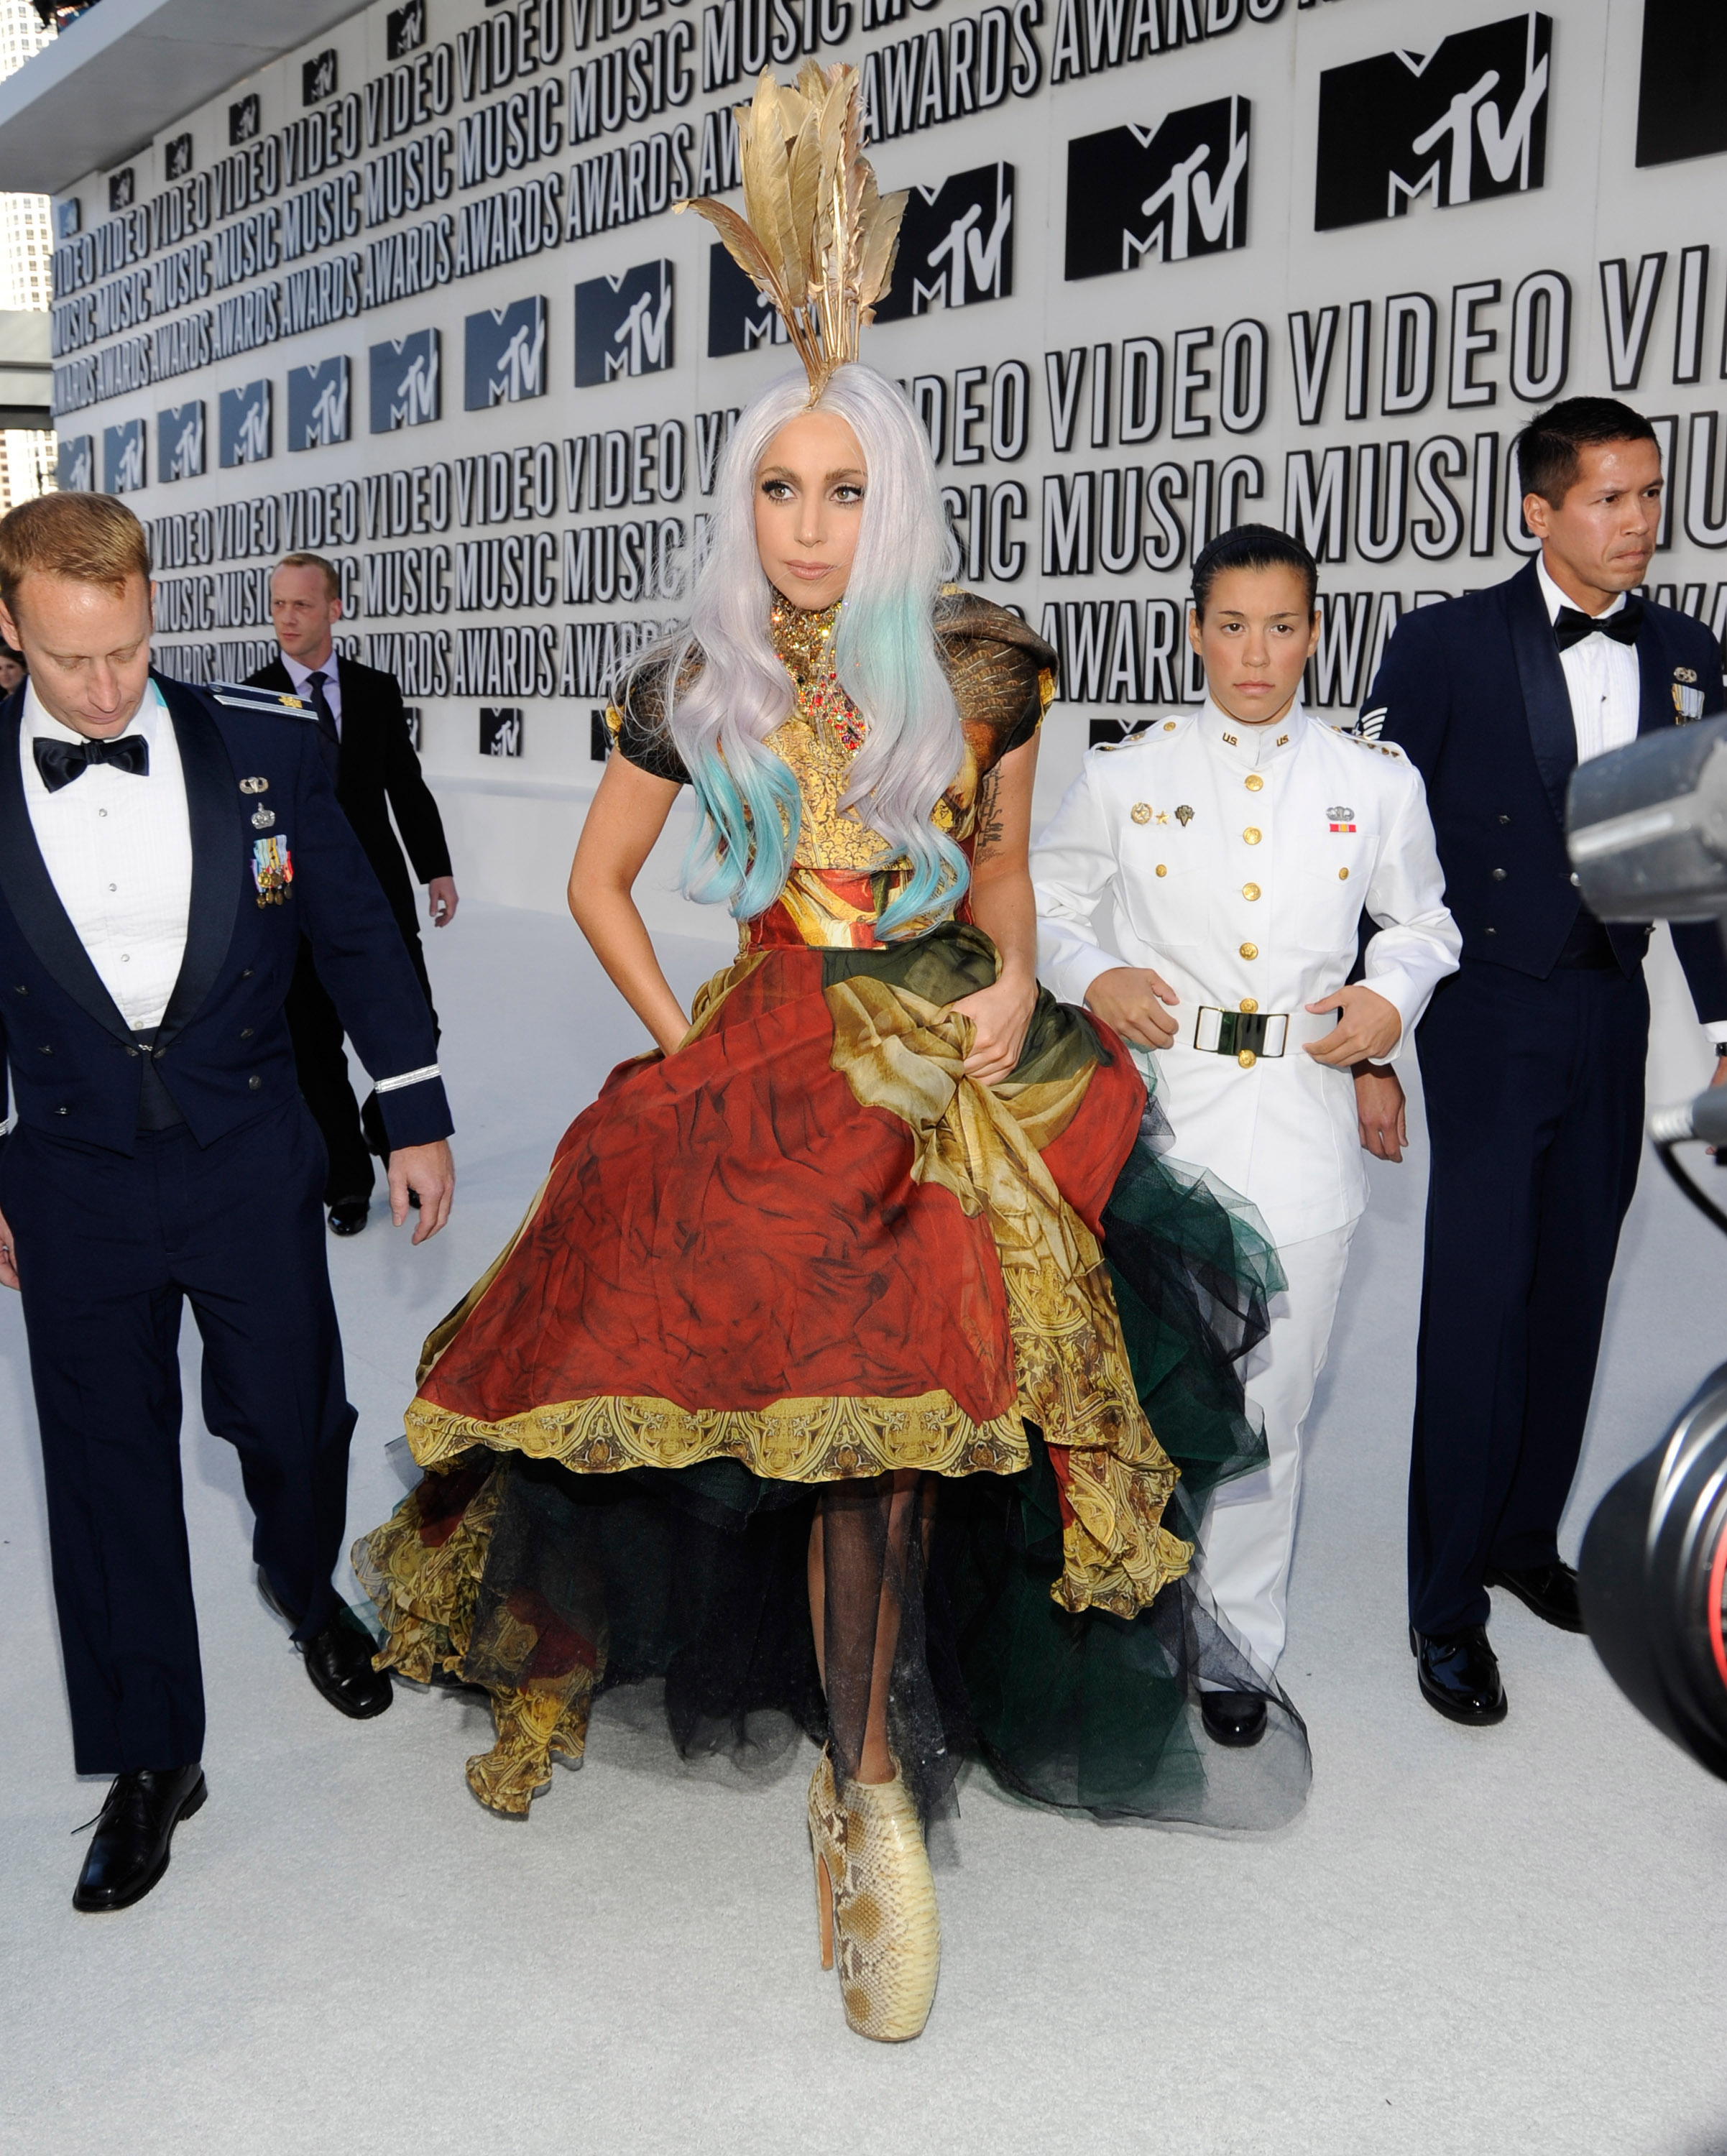 Lady Gaga arrives at the 2010 MTV Video Music Awards held at Nokia Theatre L.A. Live on September 12, 2010 in Los Angeles, California.